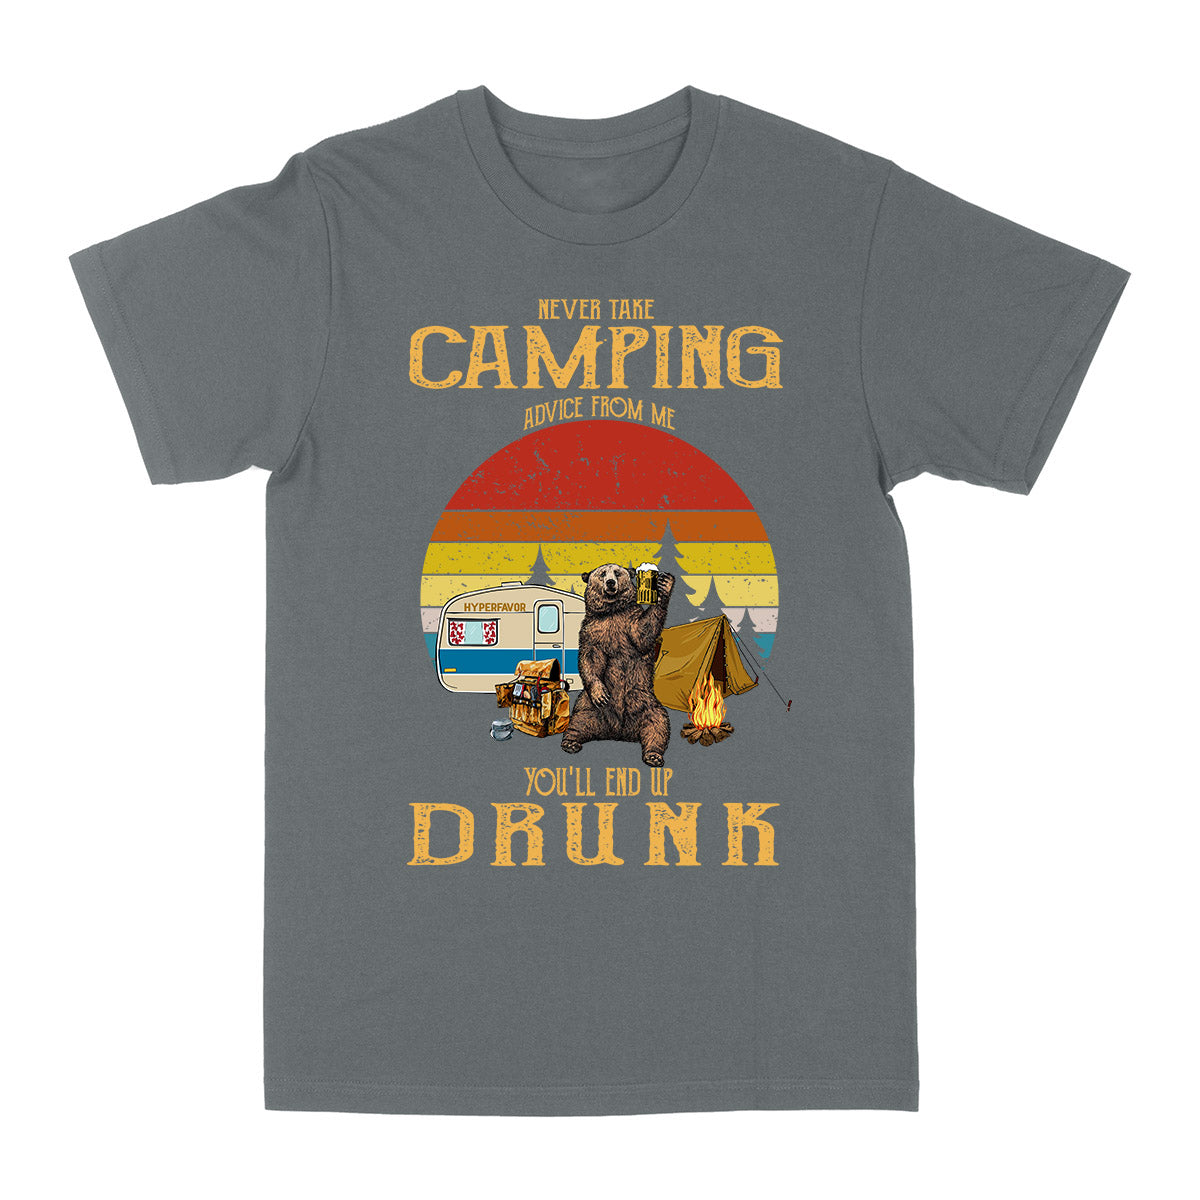 Never Take Camping Advice From Me EZ03 0604 Classic T-shirt